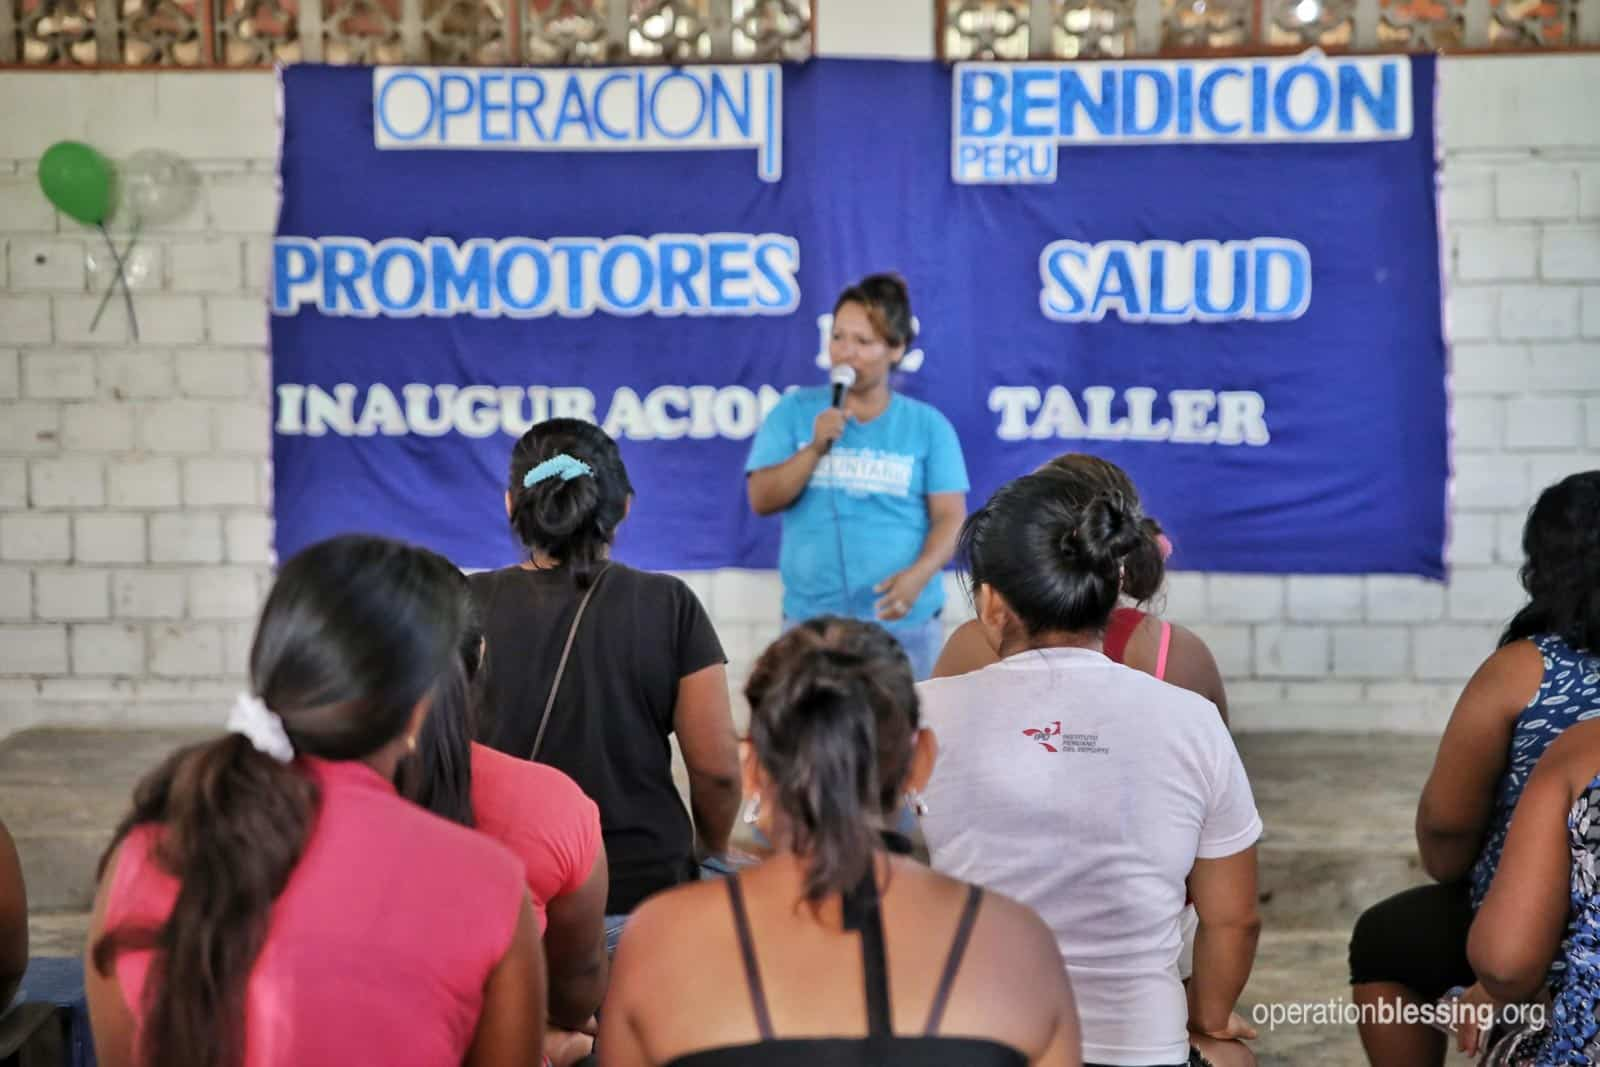 As a Community Health Worker, Lizeth speaks to a room full of people.